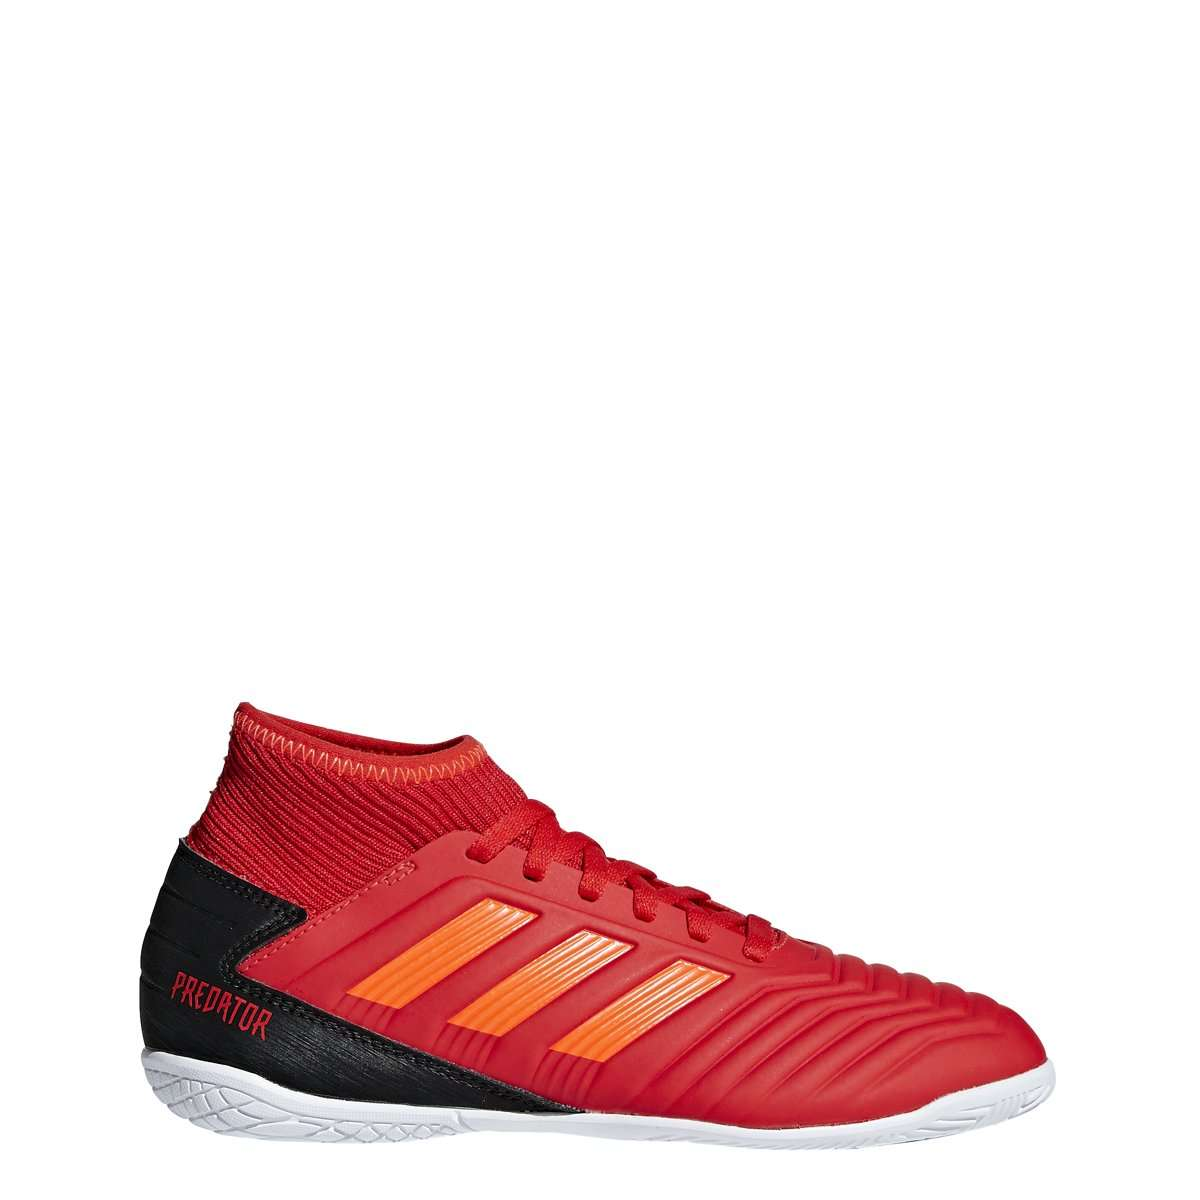 796072c2991 adidas Predator 19.3 Youth Indoor Soccer Cleats - 10.5K   Active Red Solar  Red Core Black